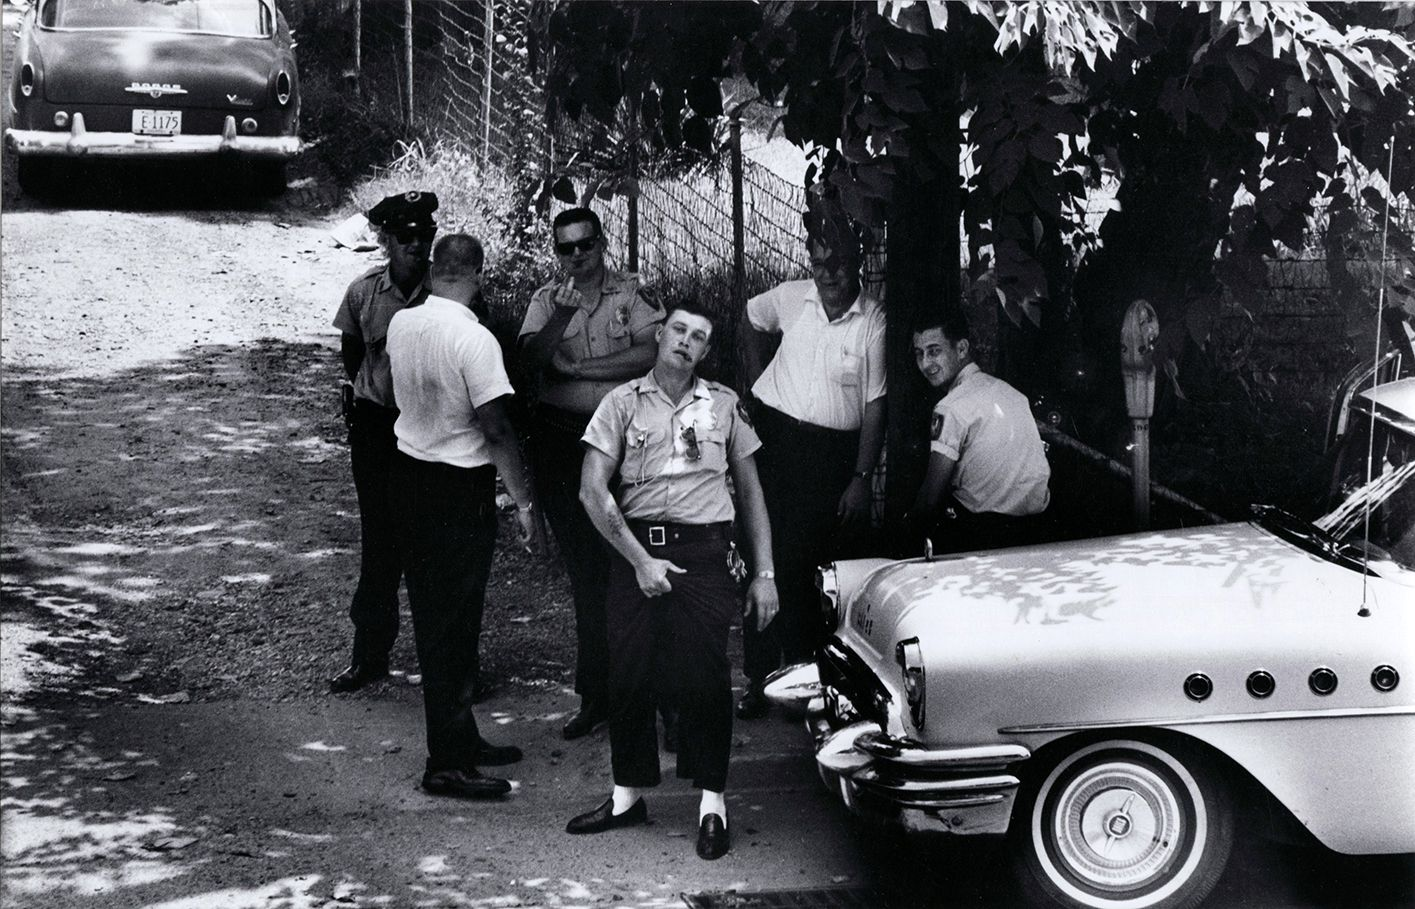 Copyright Danny Lyon / Magnum Photos, Clarksdale Mississippi Police, from Memories of the Civil Rights Movement, 1963